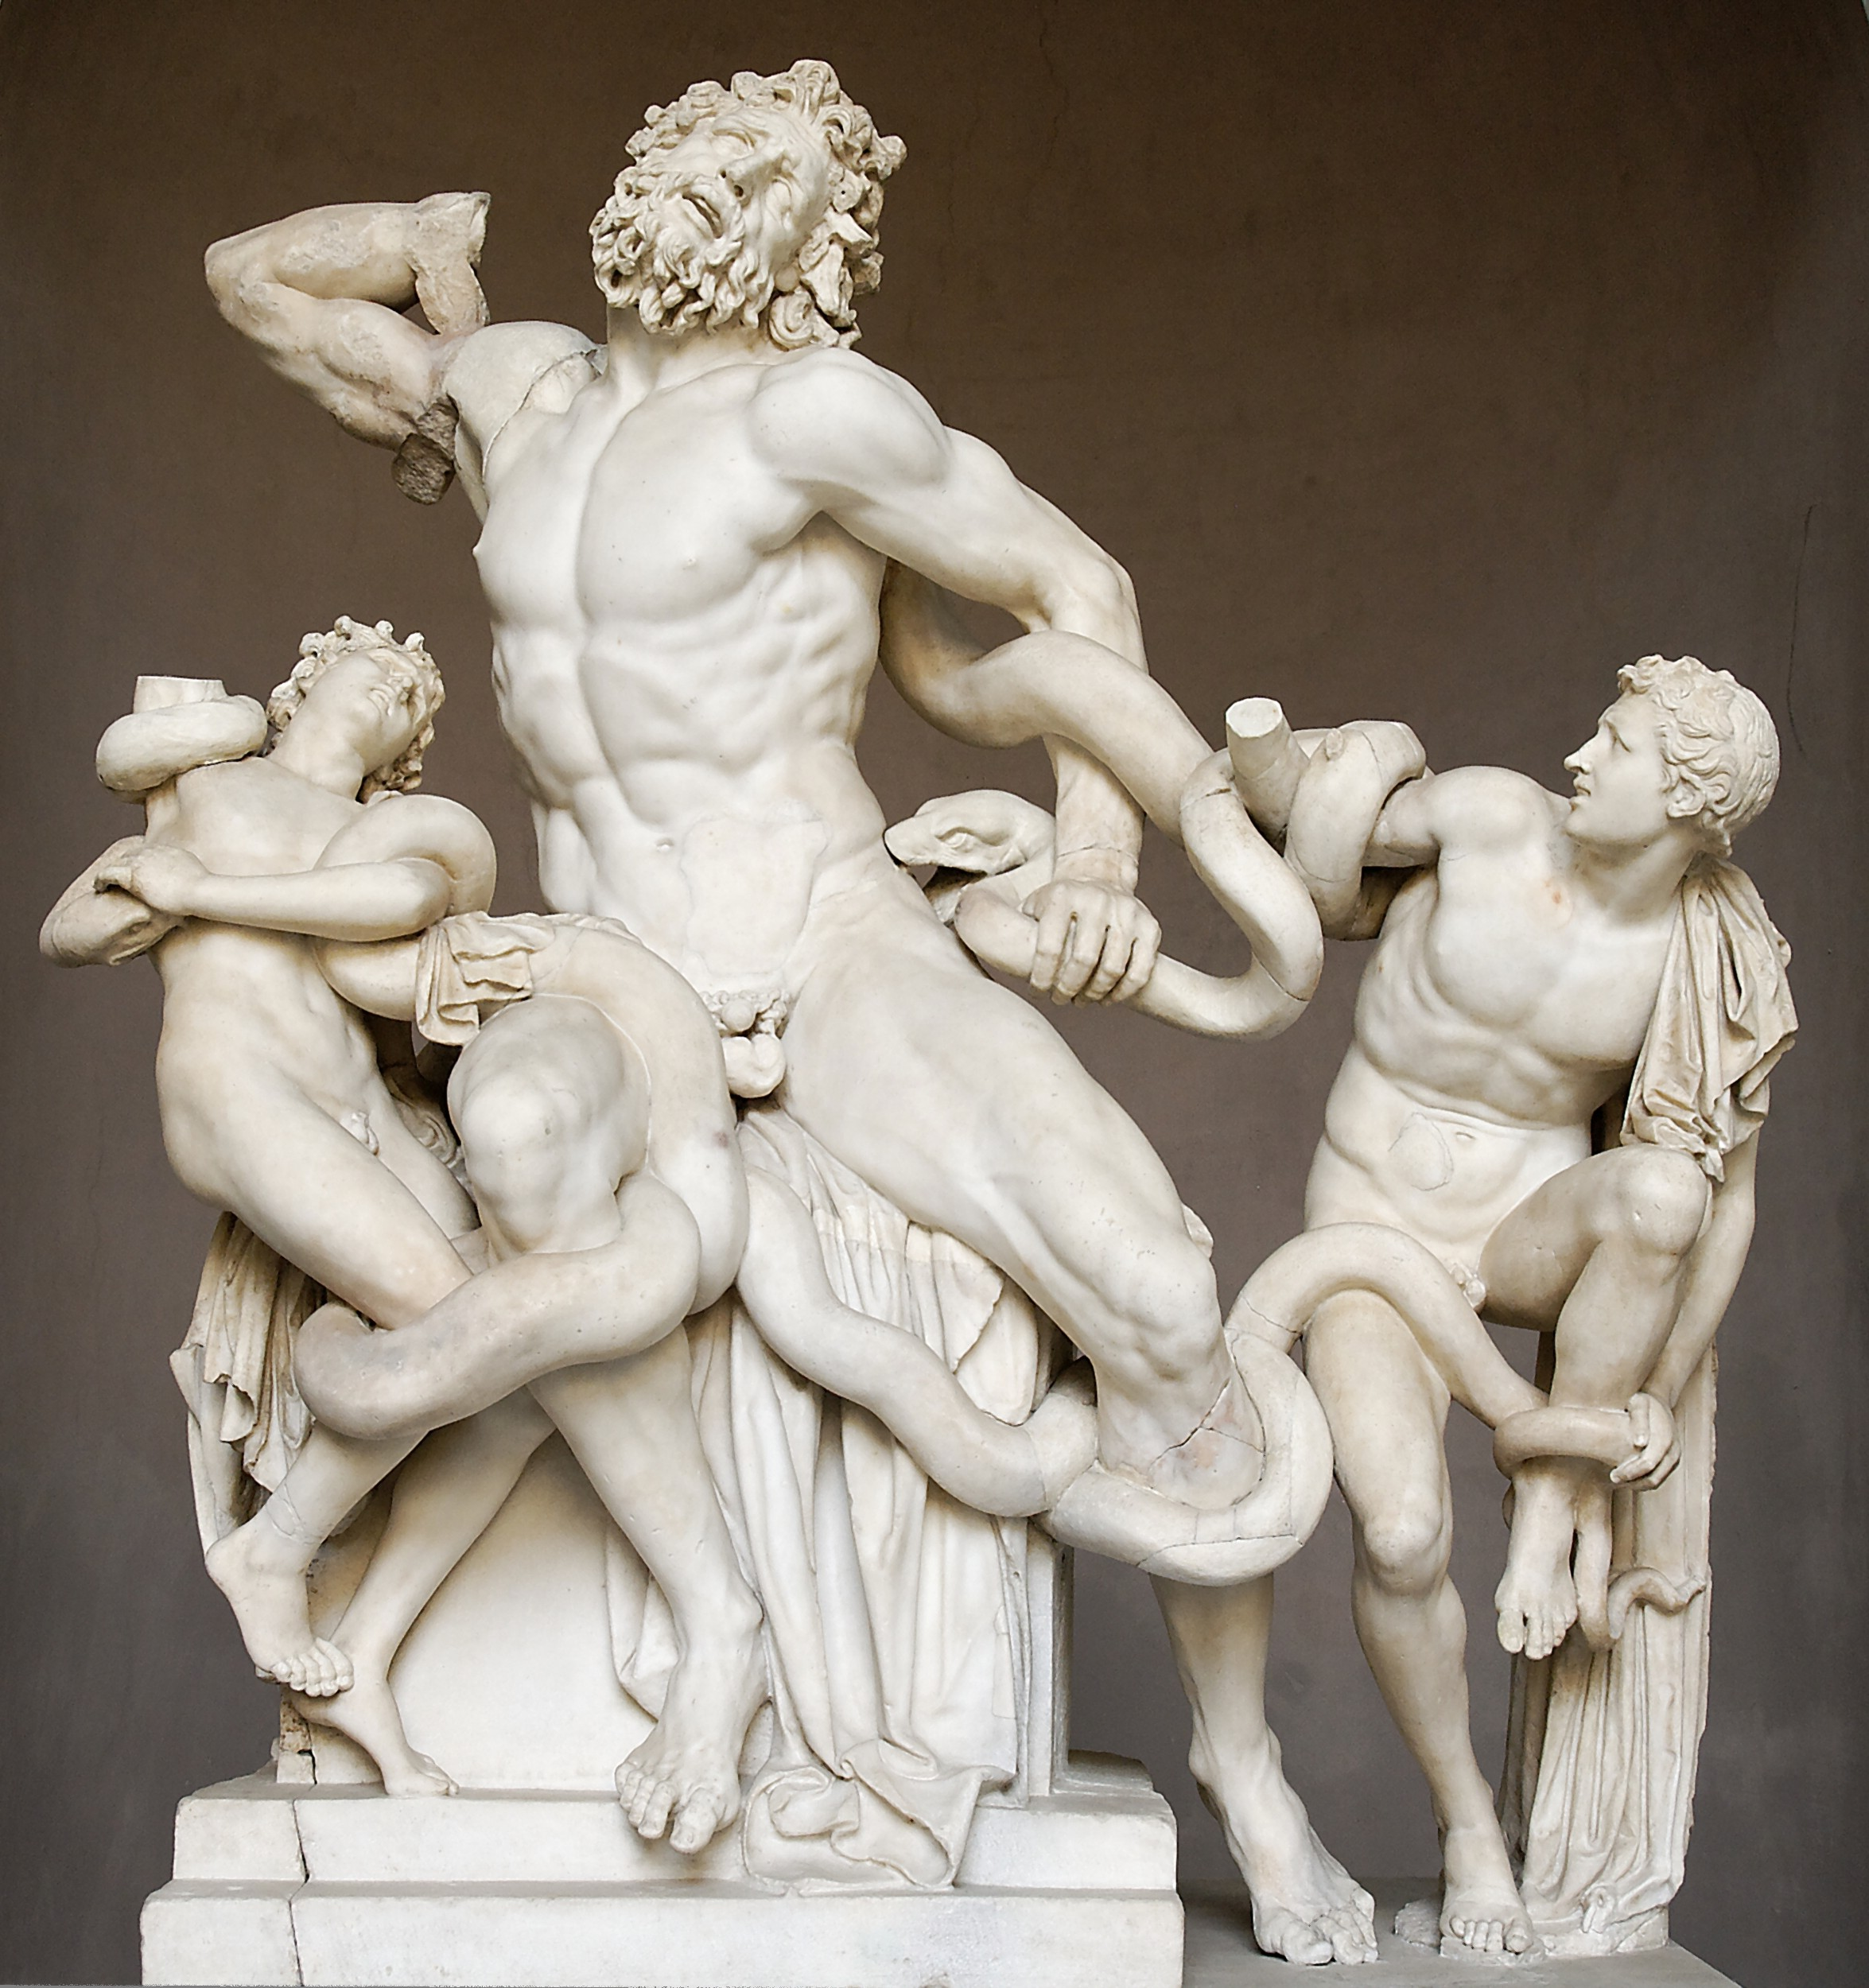 https://upload.wikimedia.org/wikipedia/commons/1/17/Laocoon_Pio-Clementino_Inv1059-1064-1067.jpg